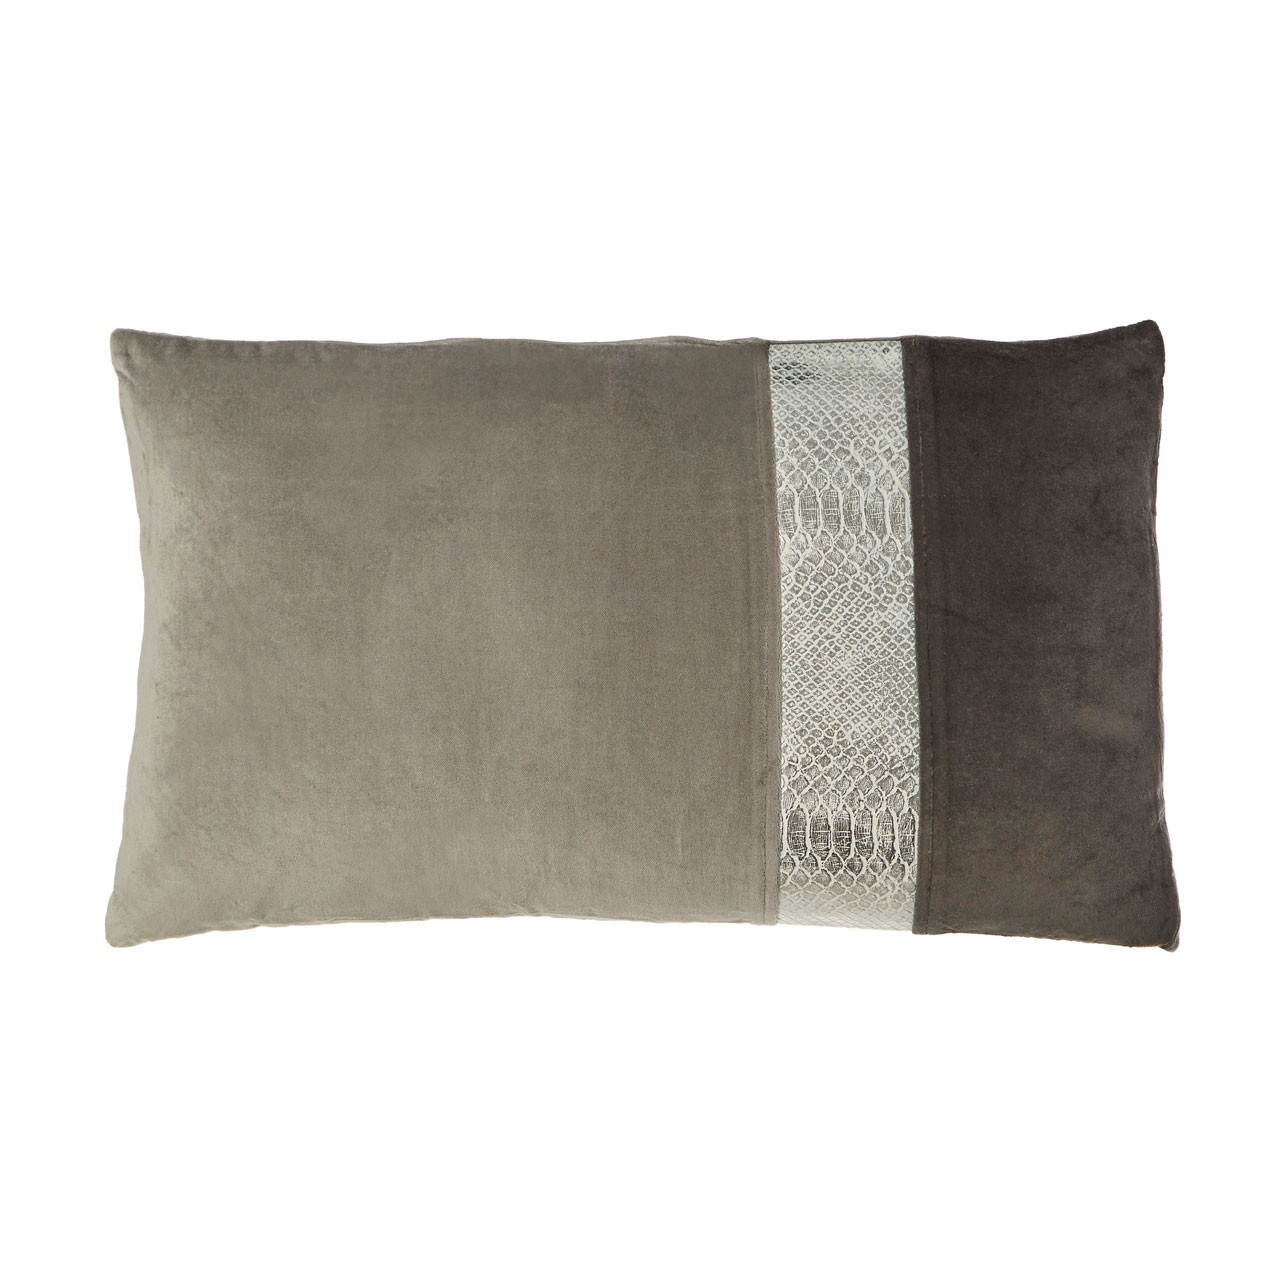 Prime Furnishing Kensington Townhouse Cushion, Velvet, Grey